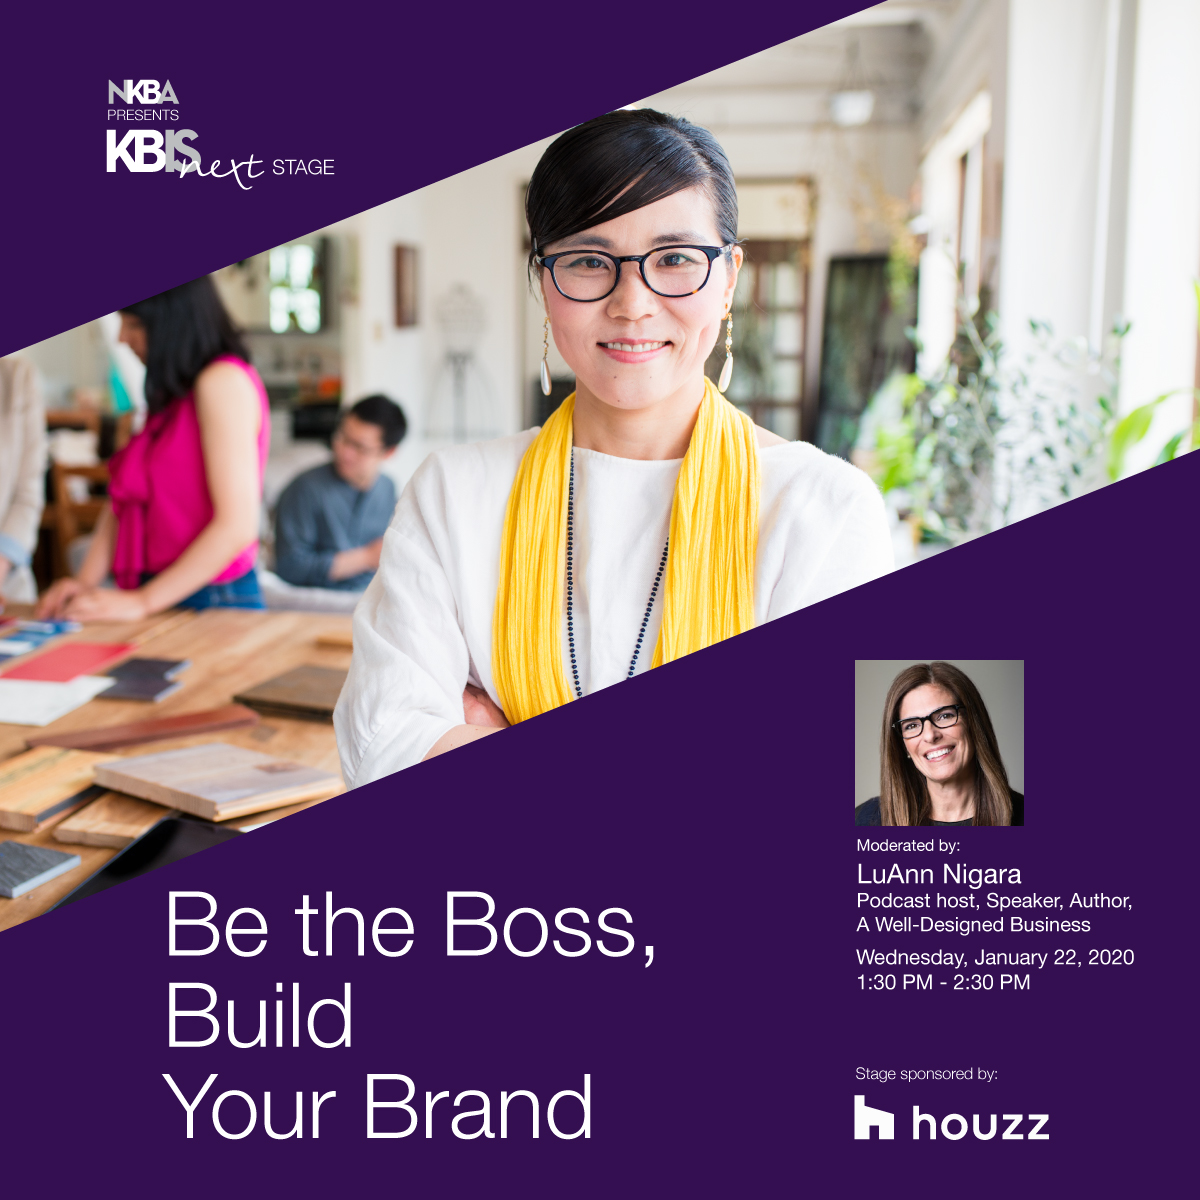 Be the Boss, Build Your Brand